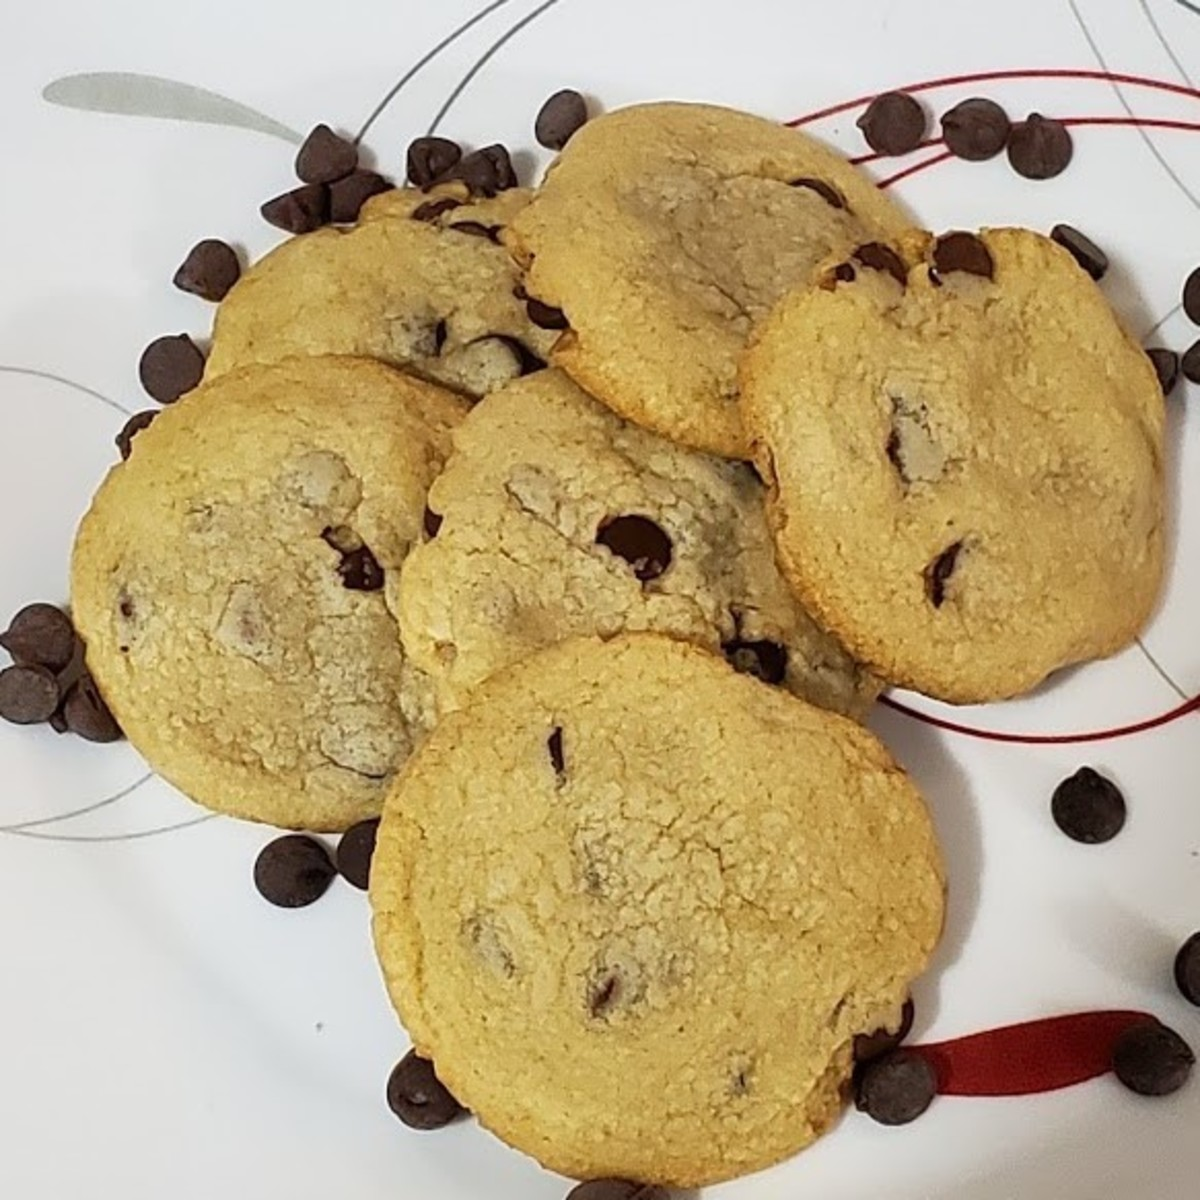 This chocolate chip cookie recipe is the result of much trial and error!